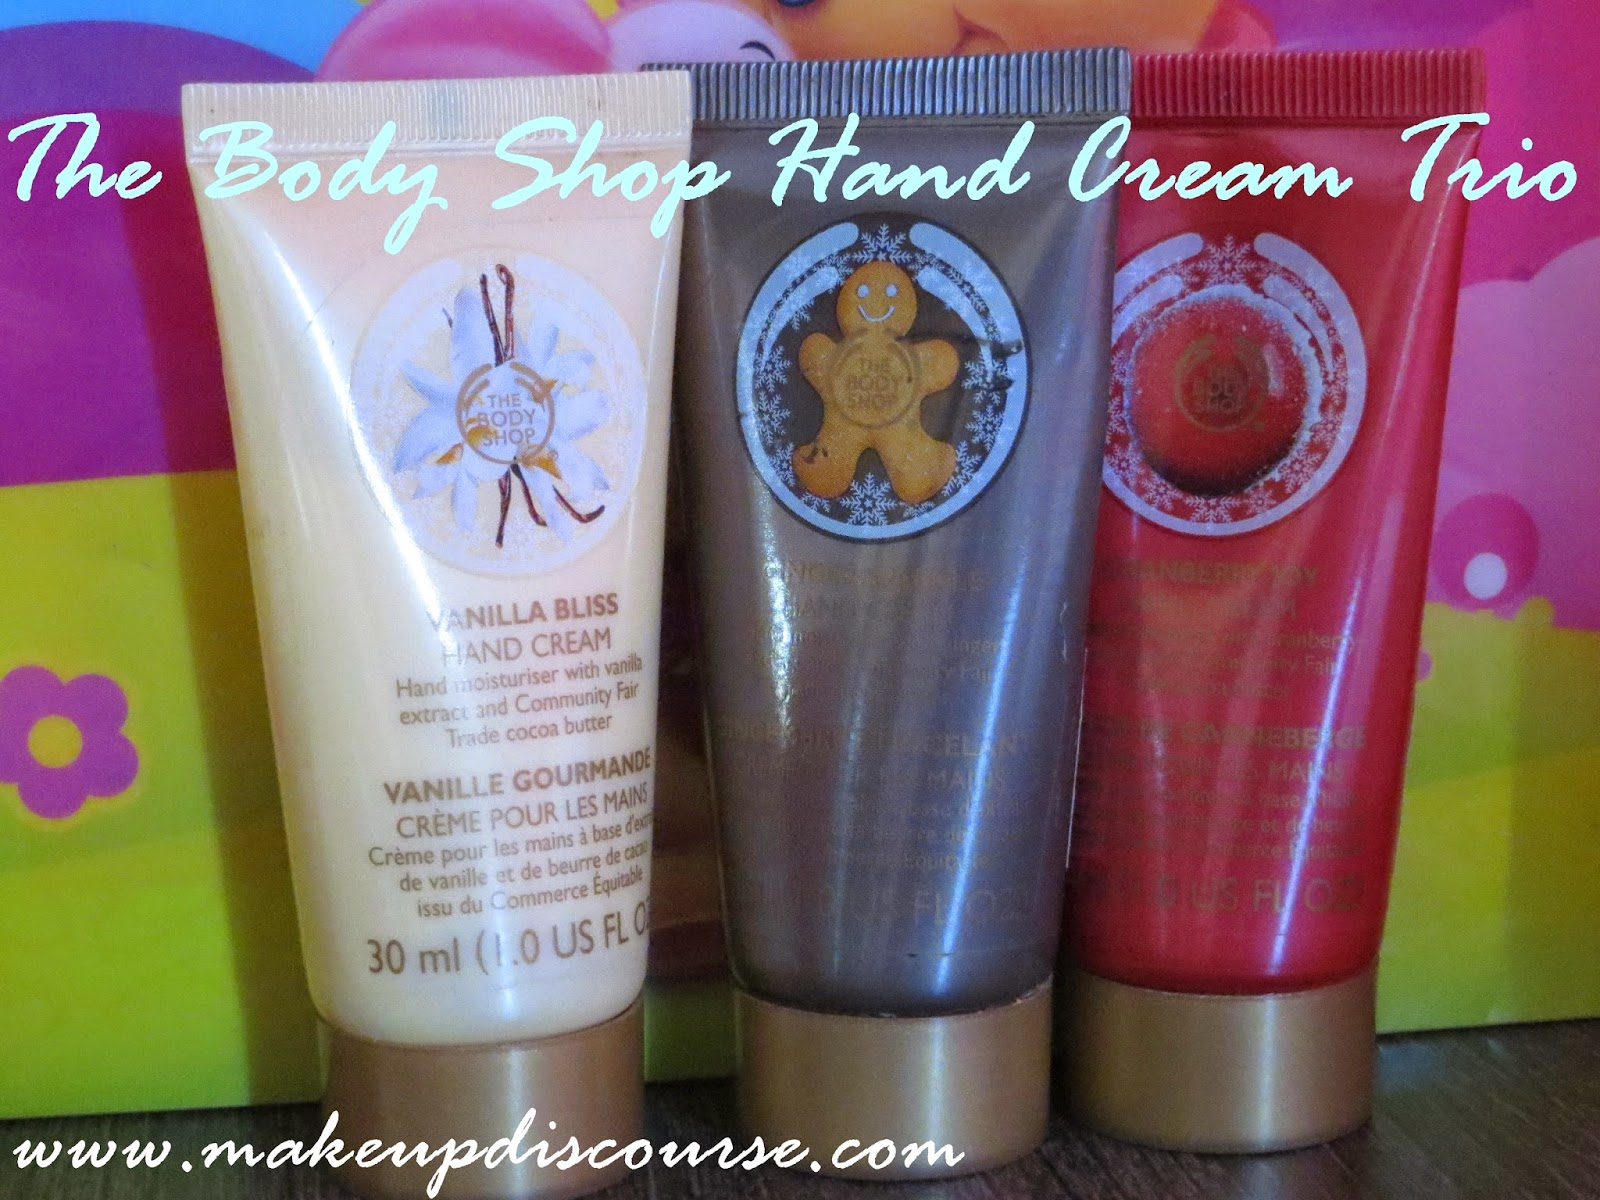 The Body Shop Festive Hand cream Trio, Ginger Sparkle, Cranberry Joy and Vanilla Bliss